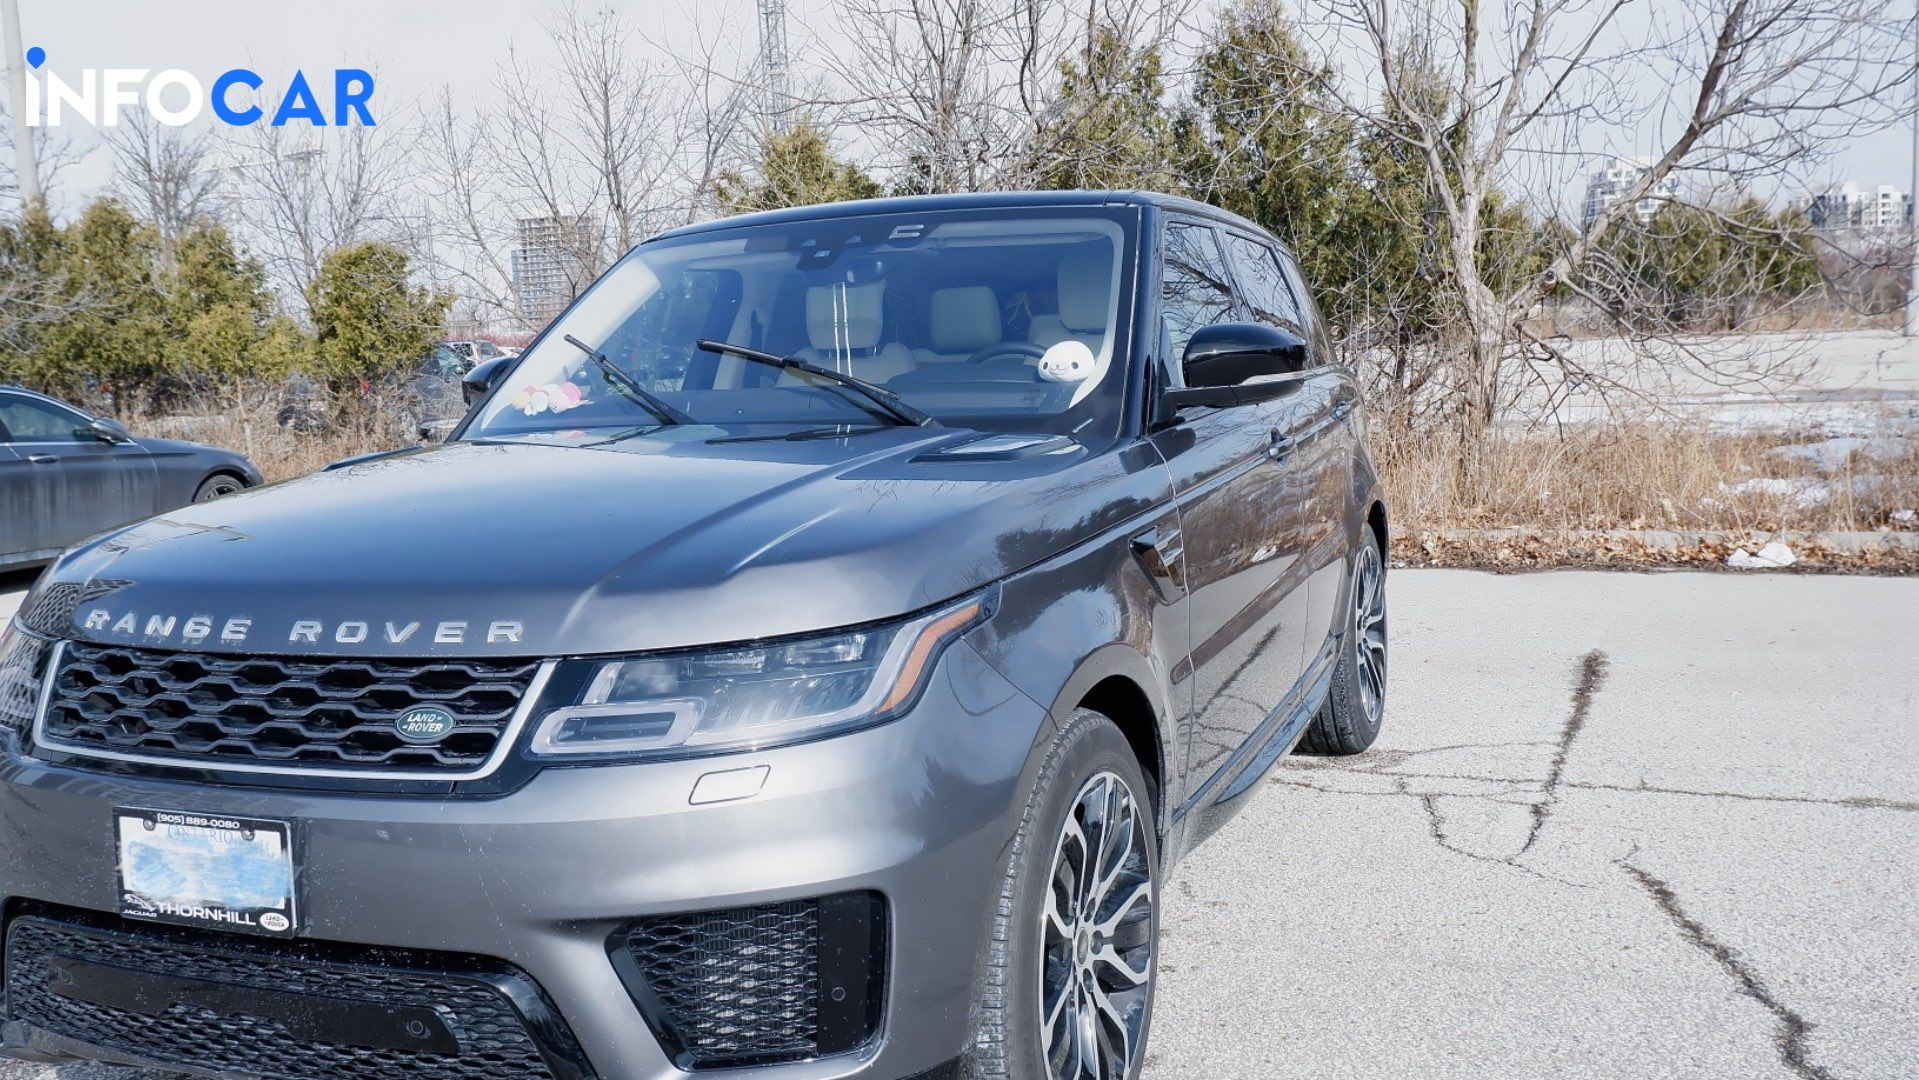 2019 Land Rover Range Rover Sport HSE 4D utility   - INFOCAR - Toronto's Most Comprehensive New and Used Auto Trading Platform